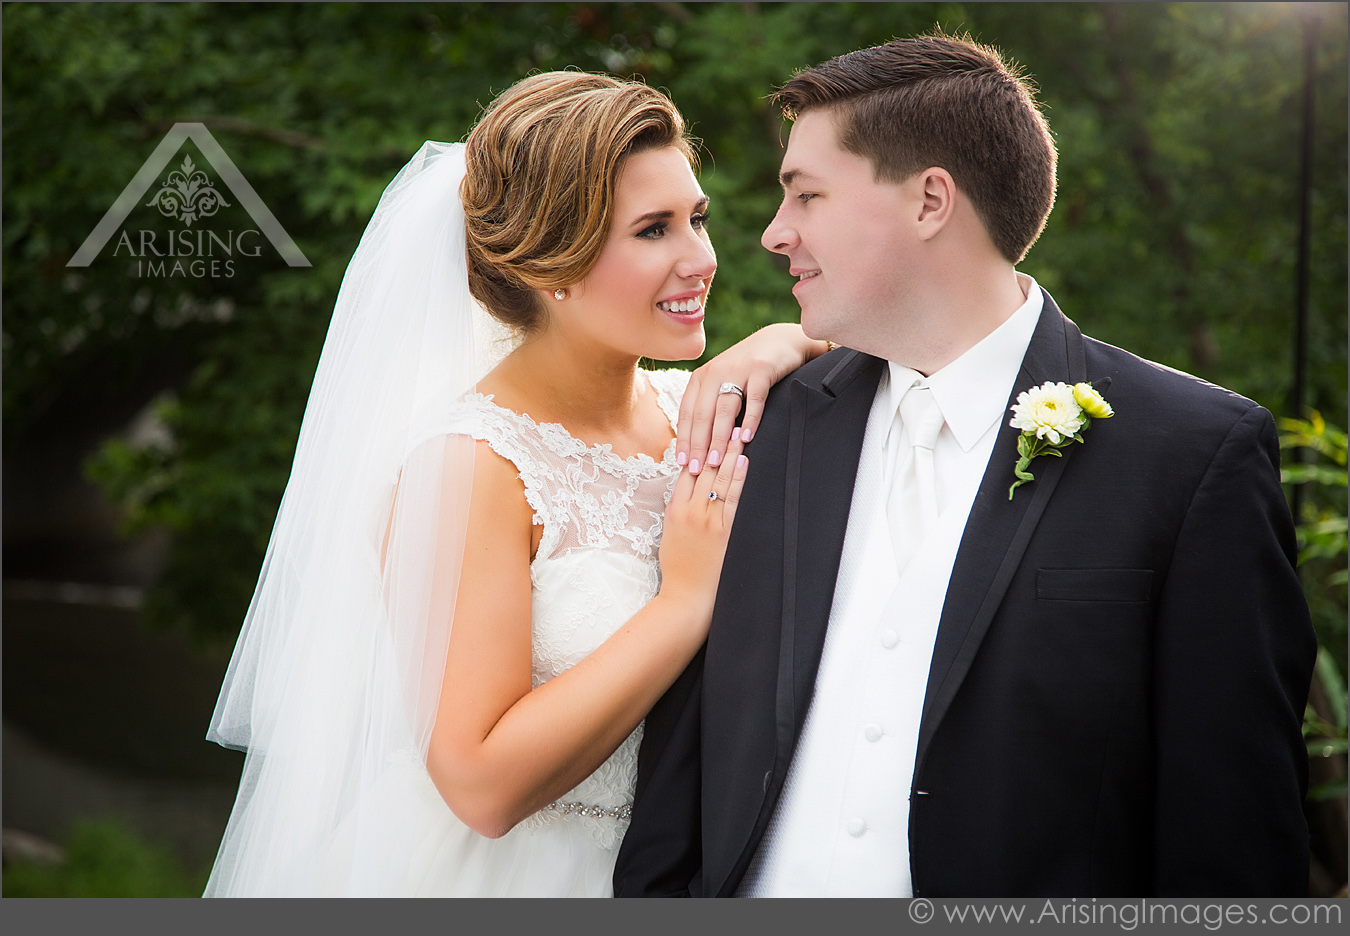 Amazing Wedding Photographers in Michigan